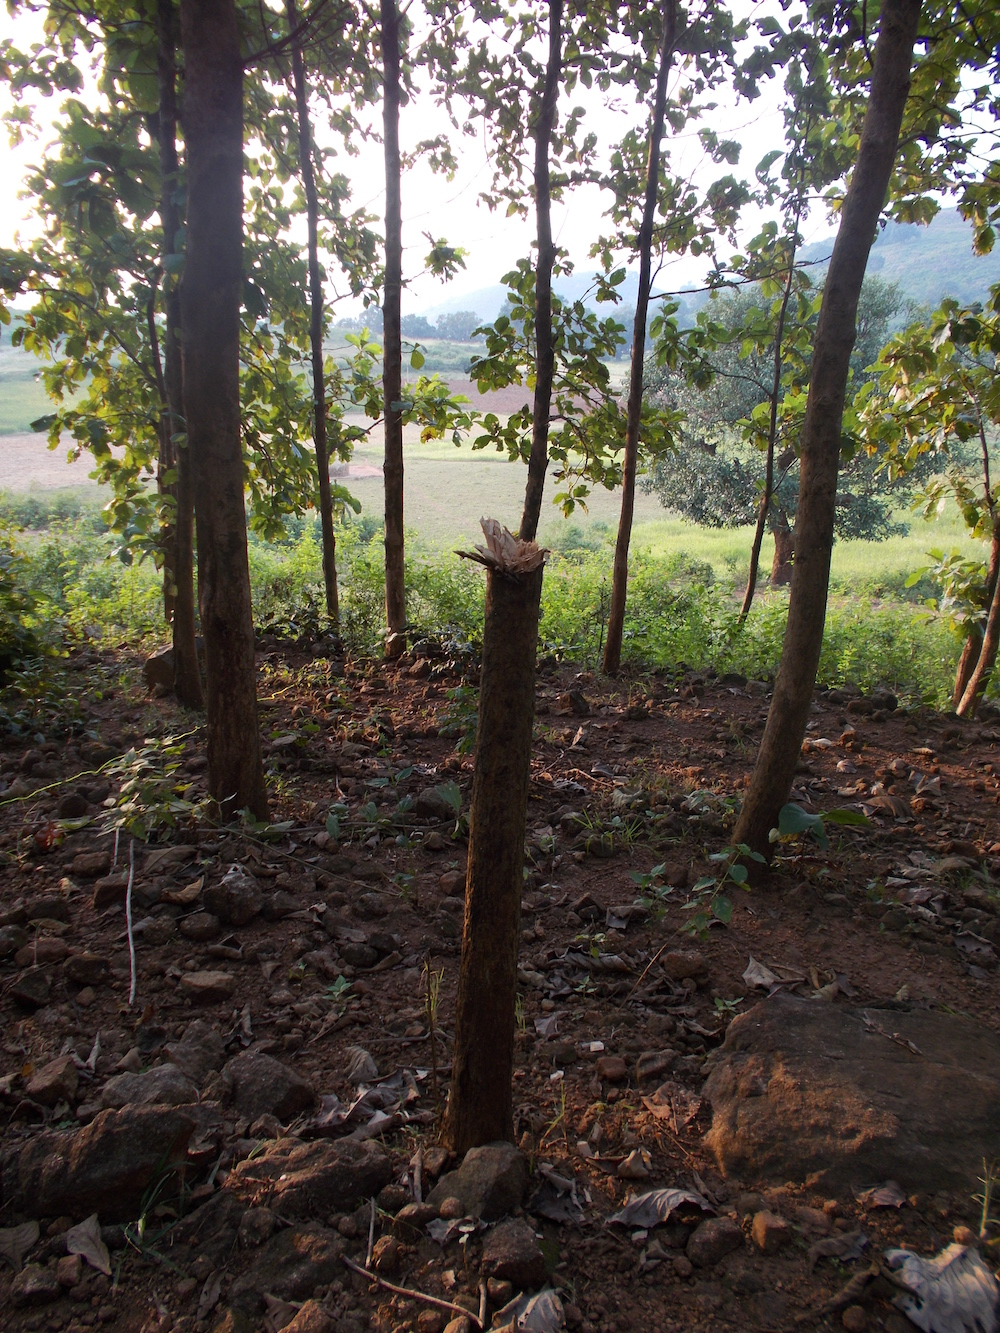 A cut tree in the compensated teak forest